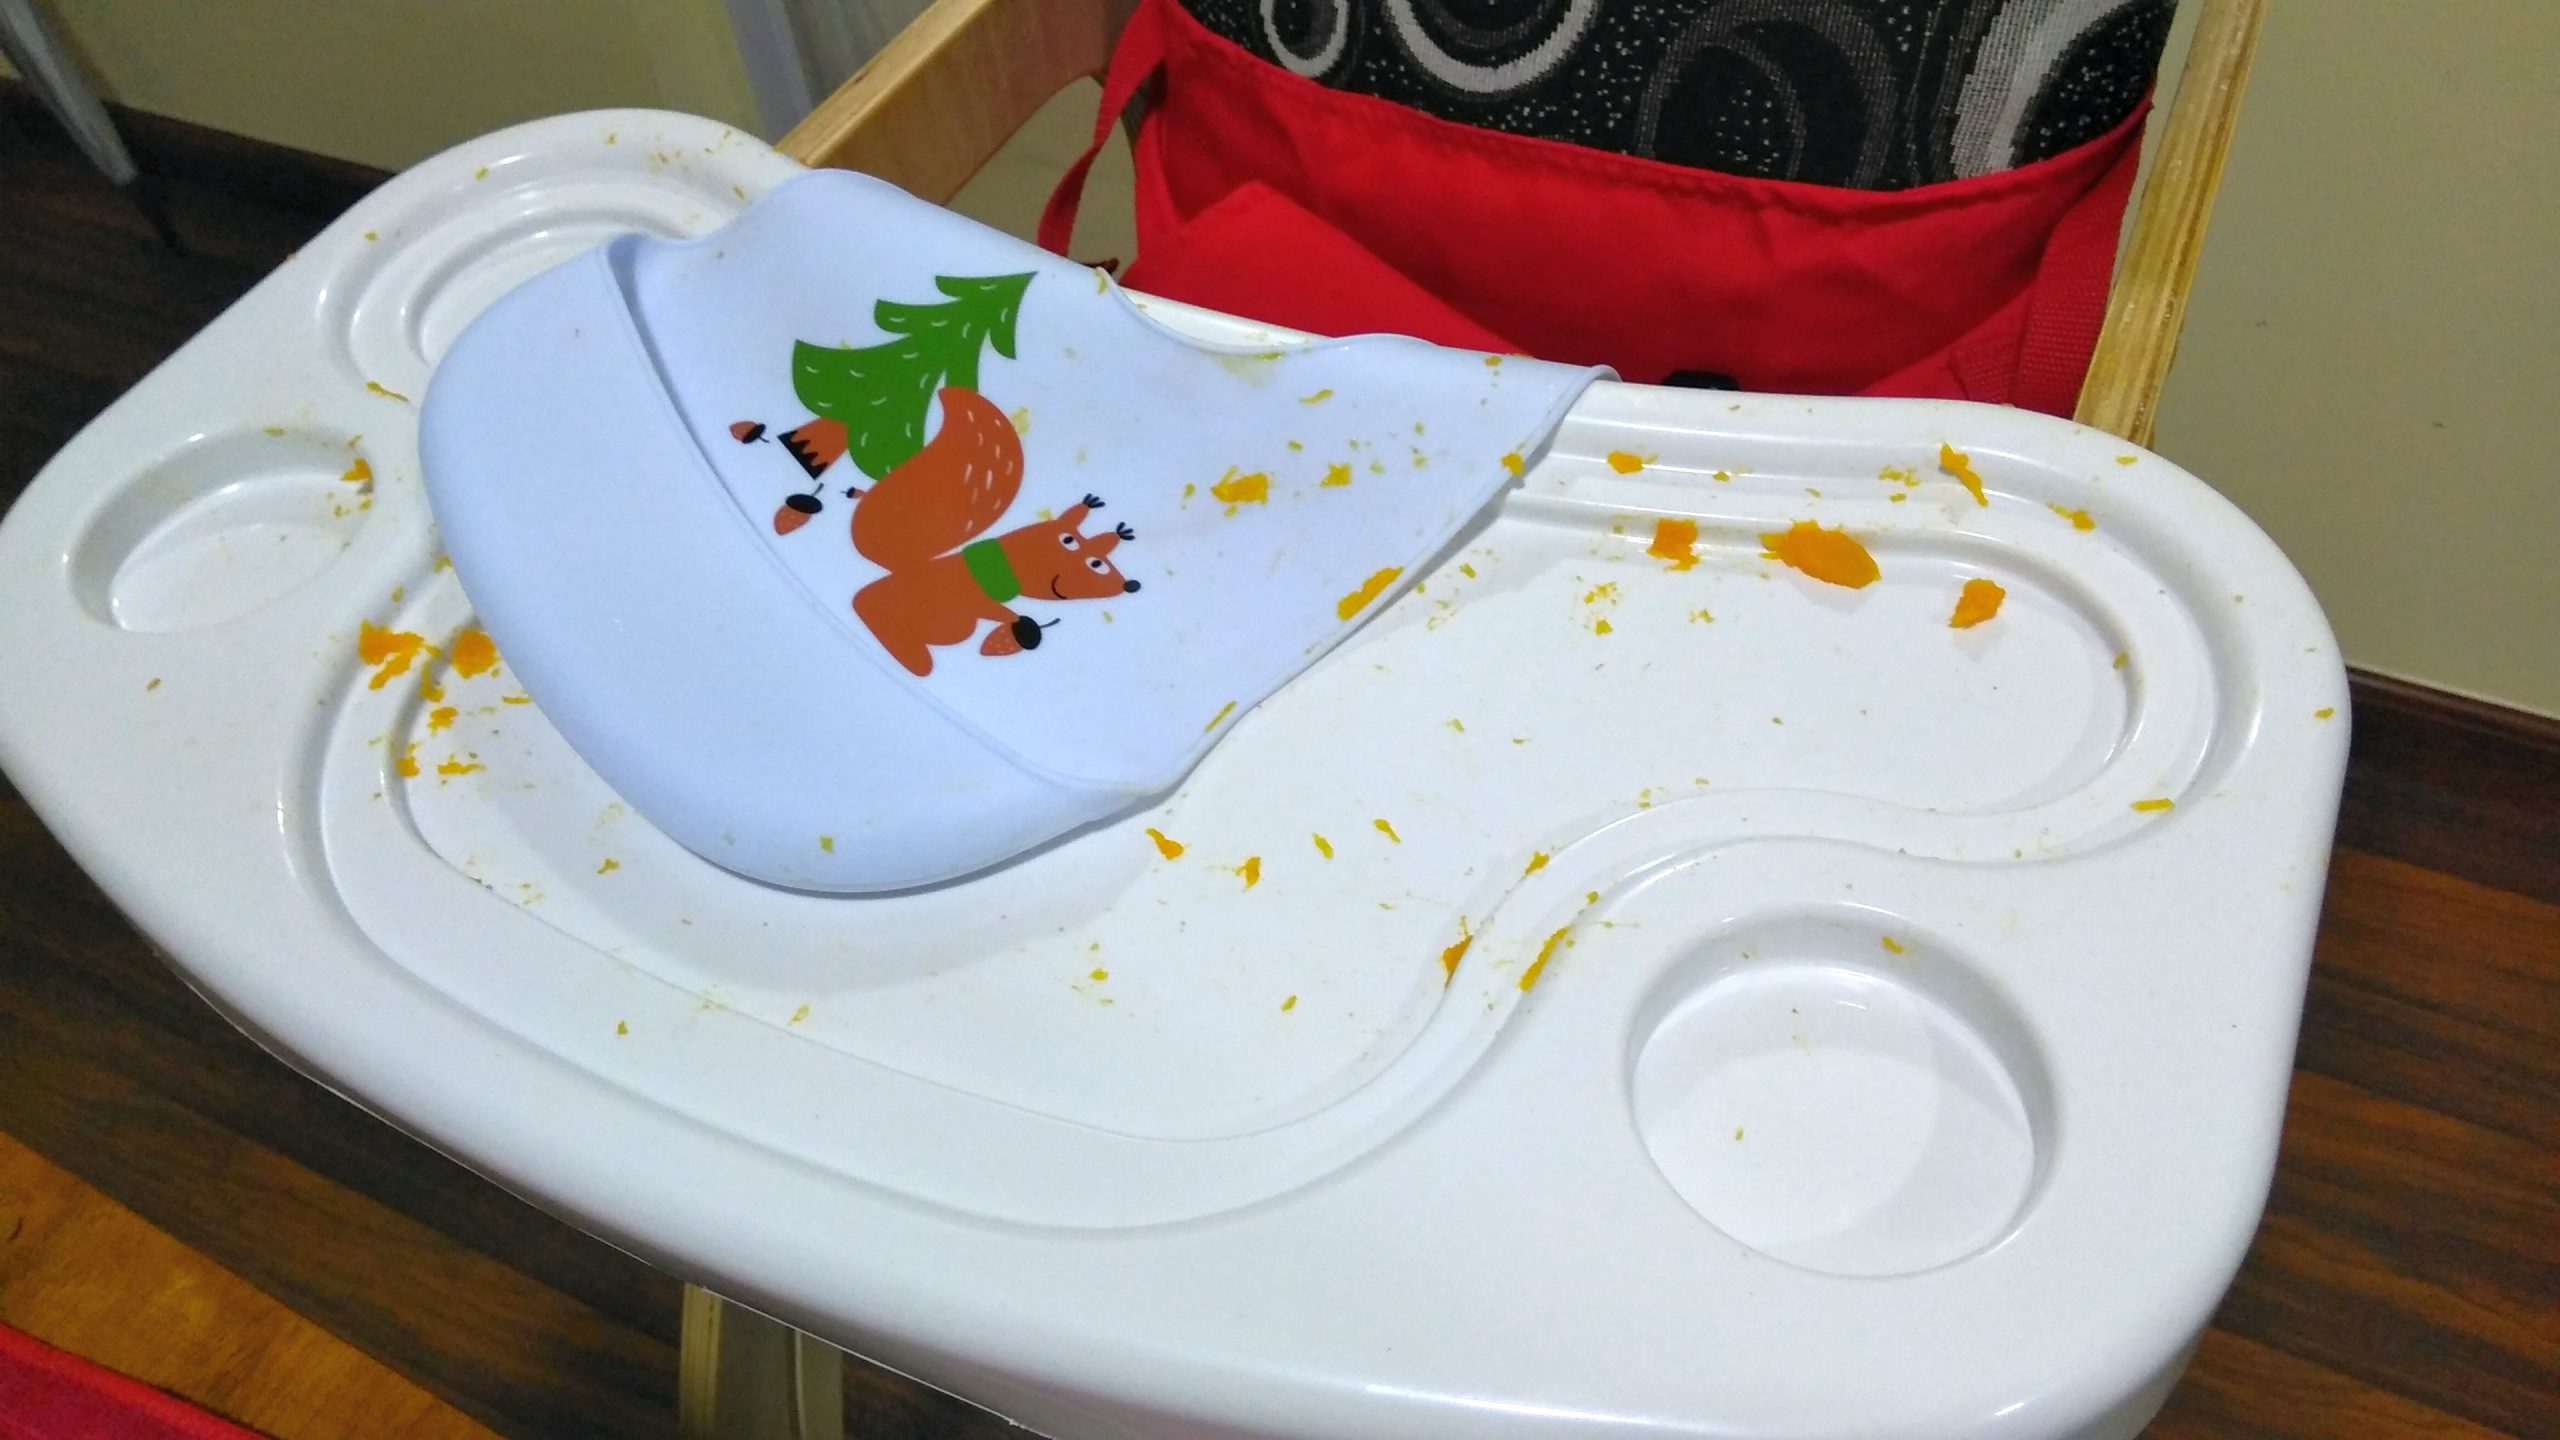 The post baby led weaning mess